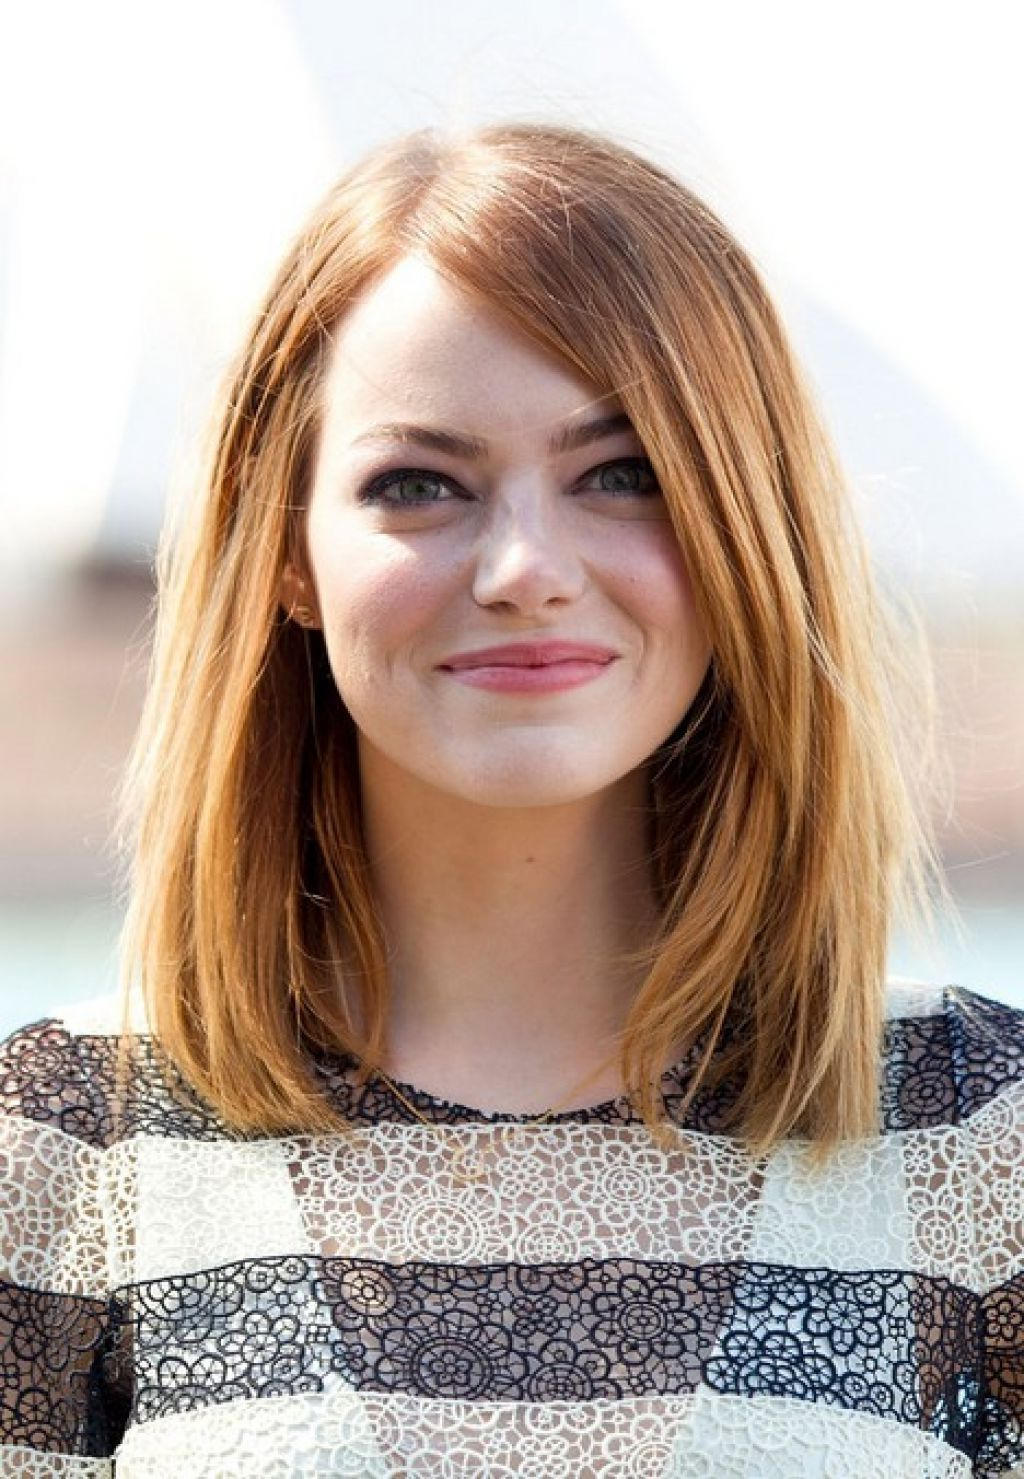 Asian Women Hairstyles For Round Faces Haircut For Round Chubby Face With Short Hairstyles For Asian Round Face (Gallery 7 of 25)